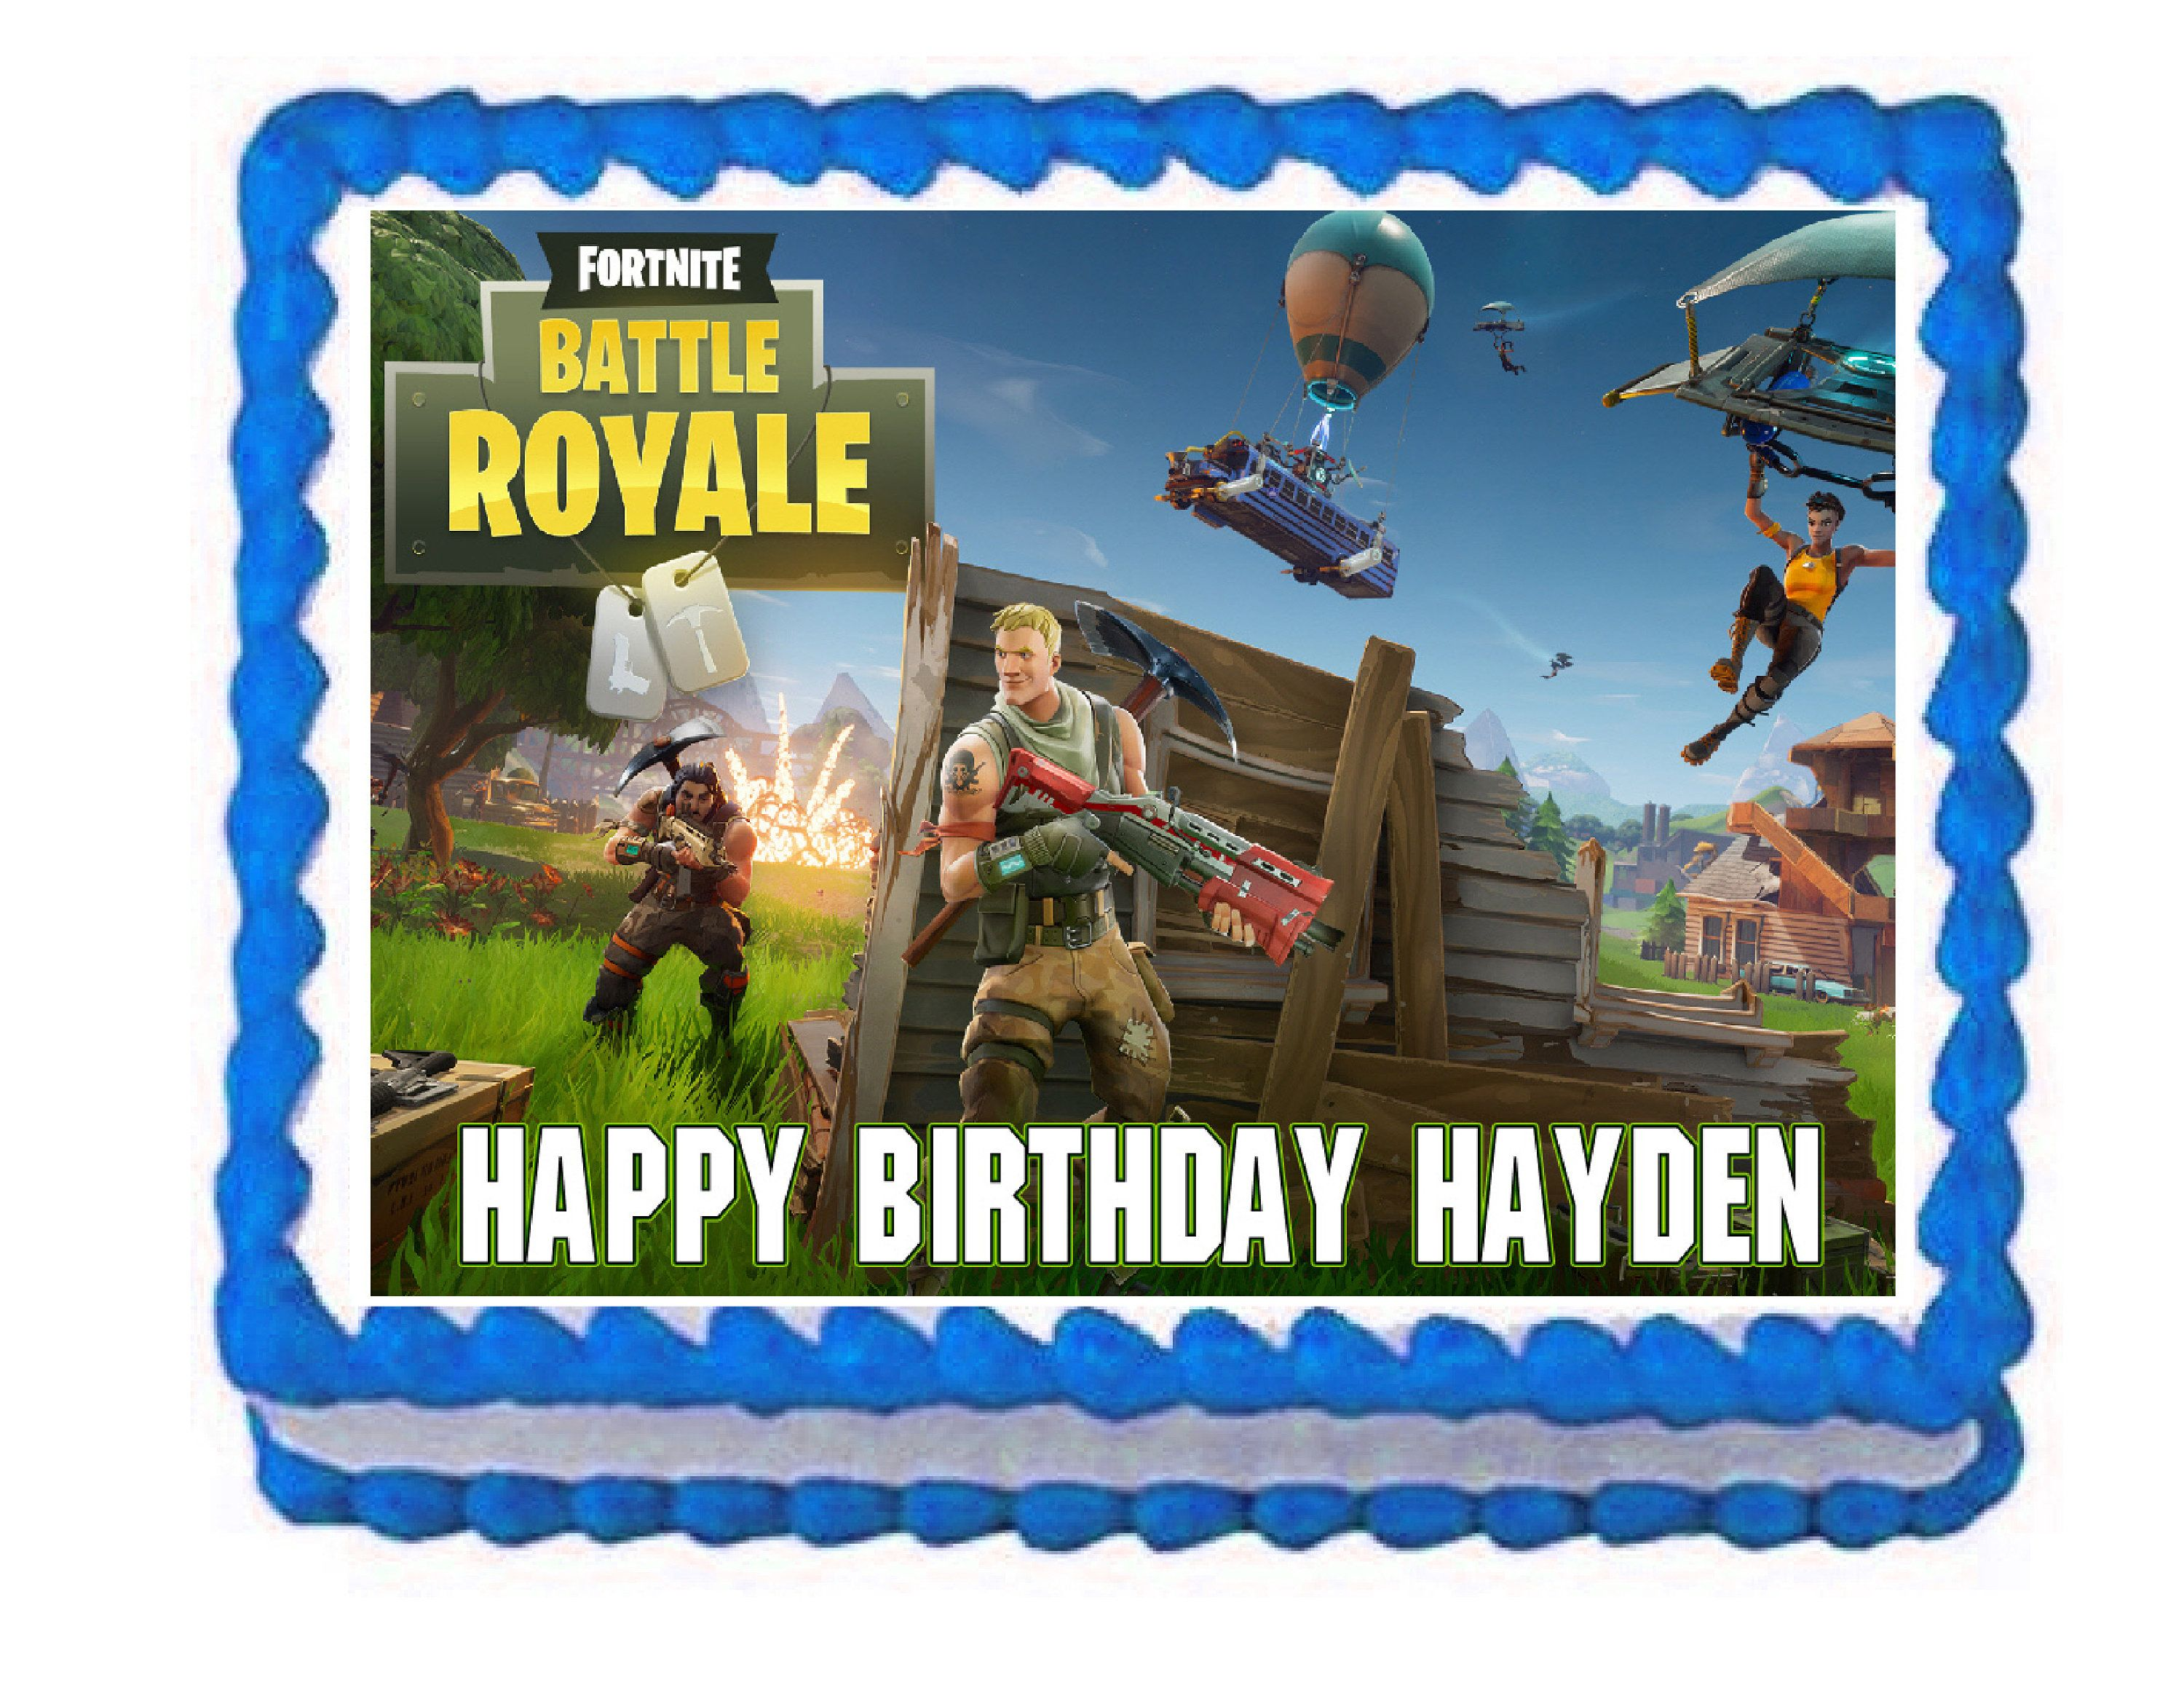 Fortnite Party Edible Cake Image Cake Topper Frosting Sheet